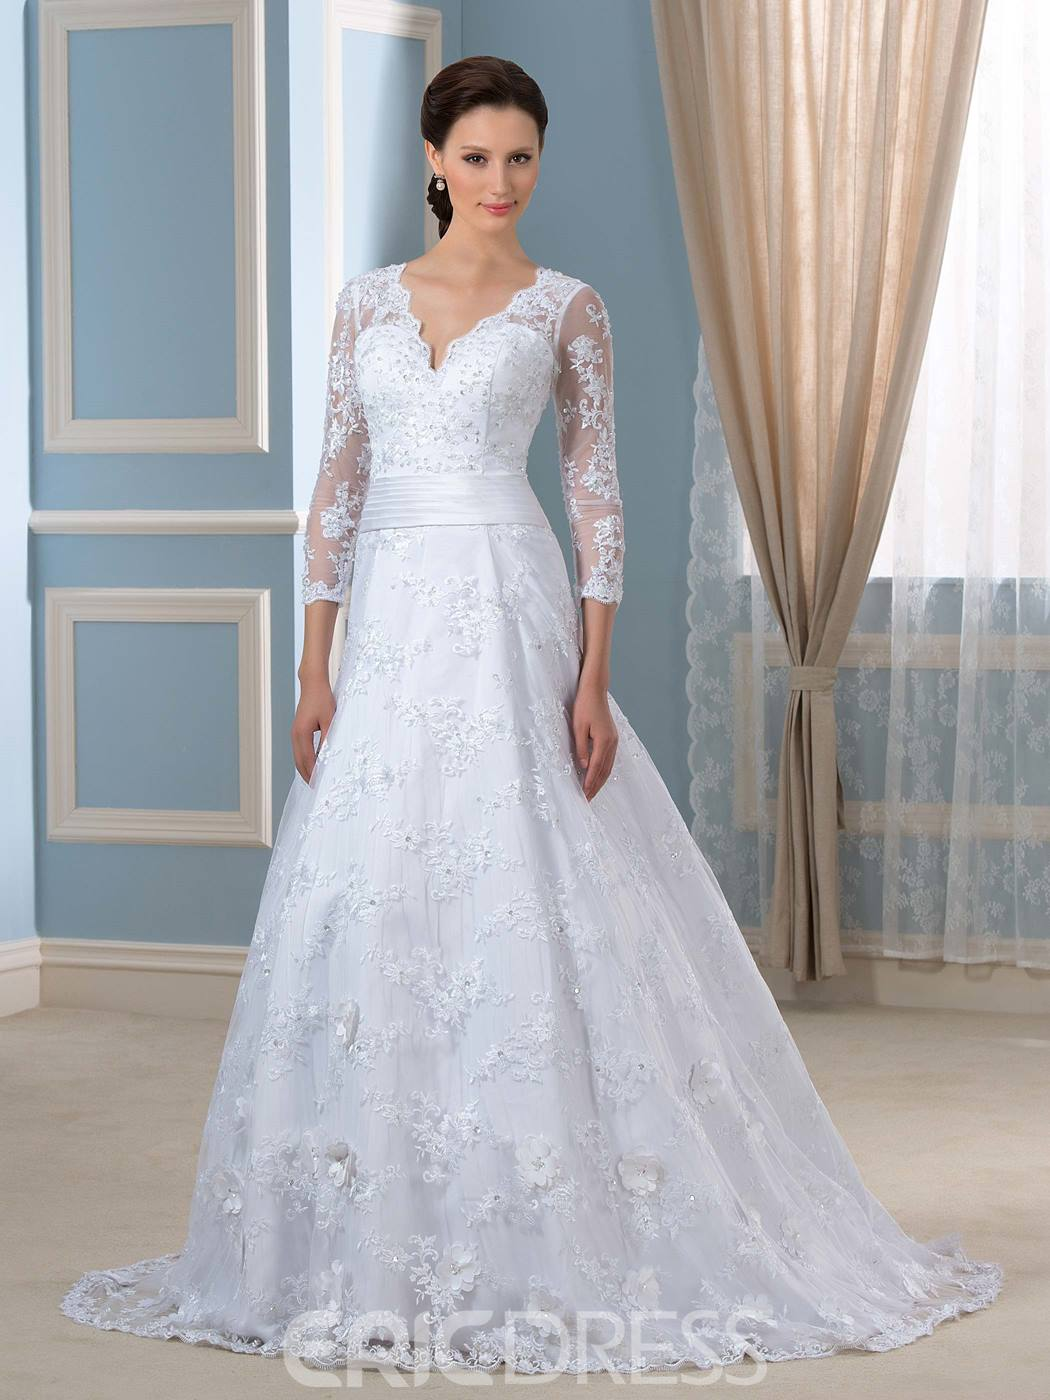 Ericdress Elegant V Neck 3/4 Length Sleeves A Line Wedding Dress